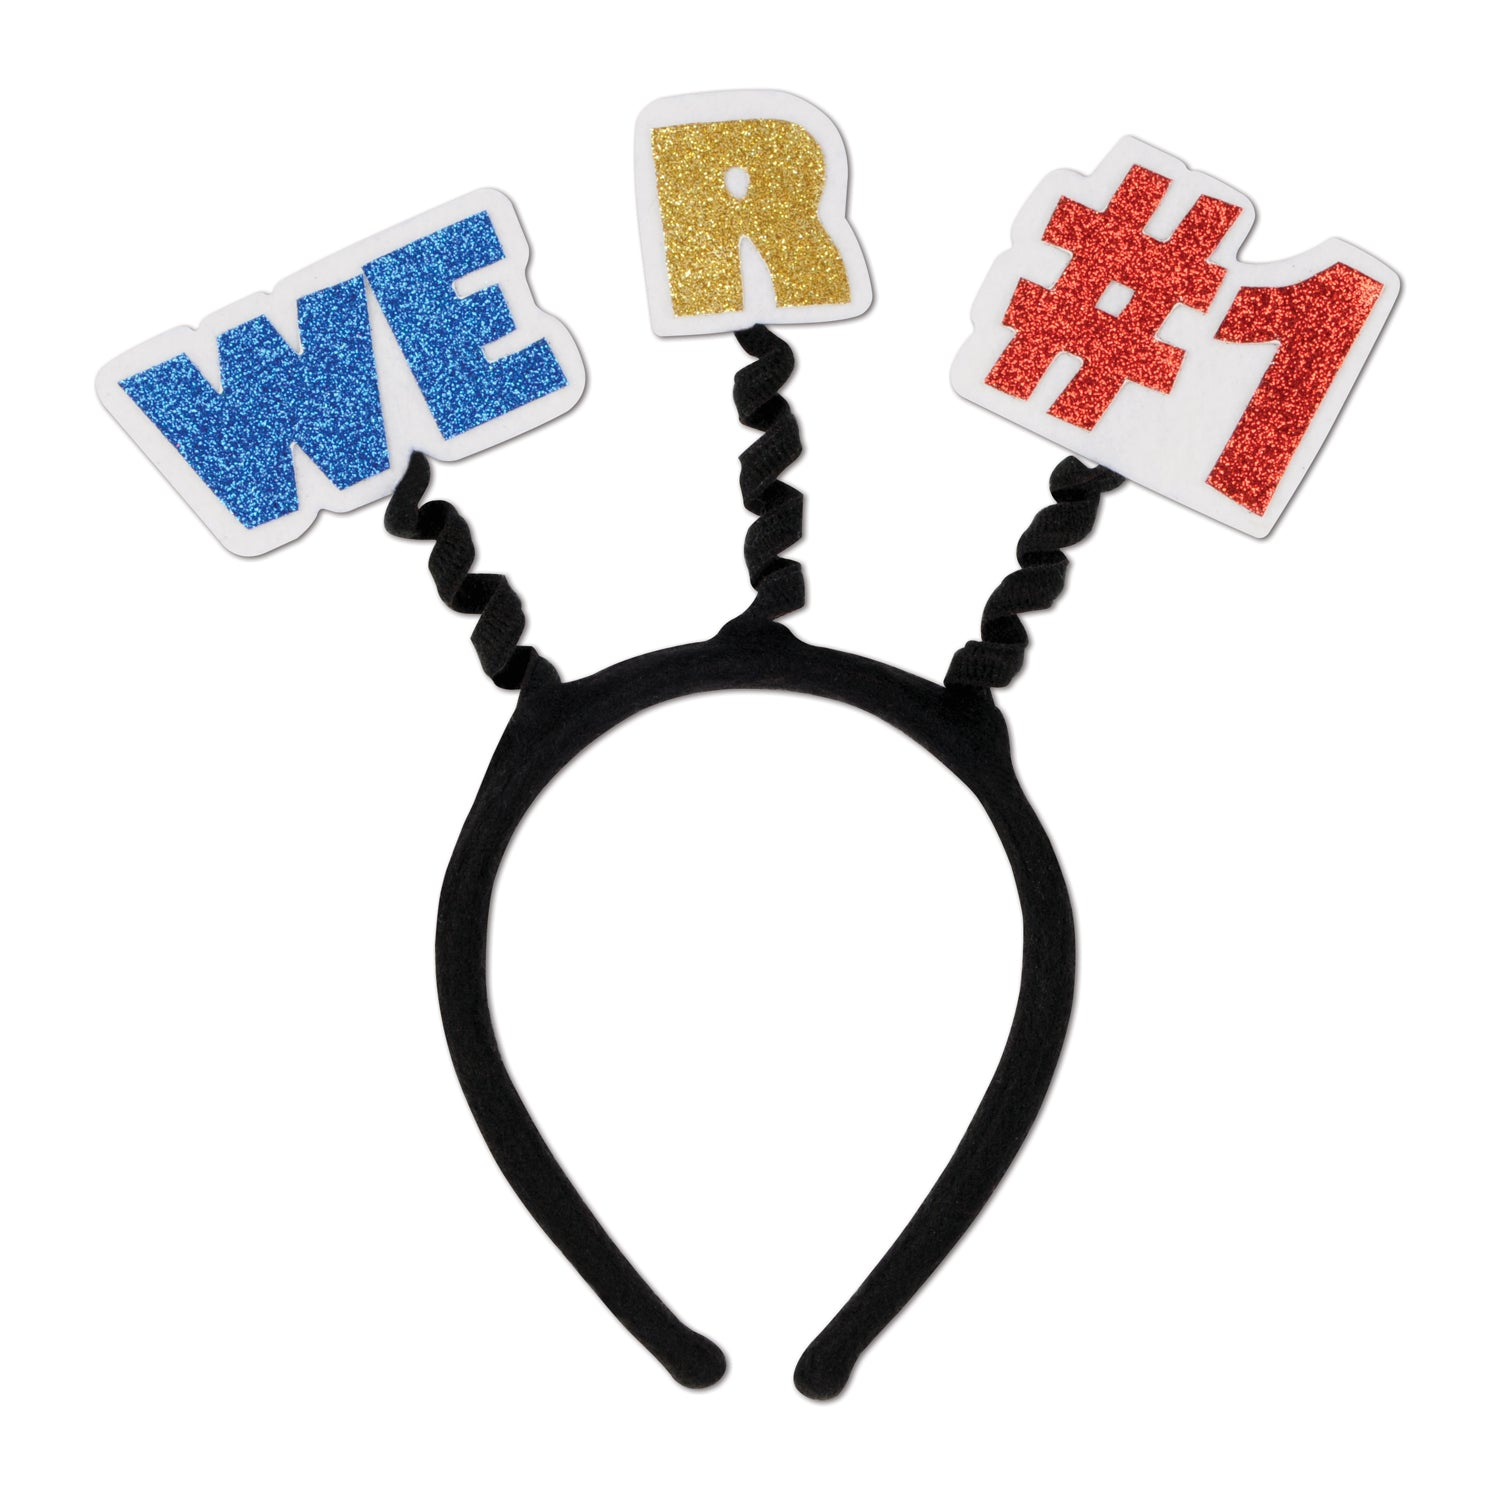 Glittered We R #1 Boppers by Beistle - Sports Theme Decorations